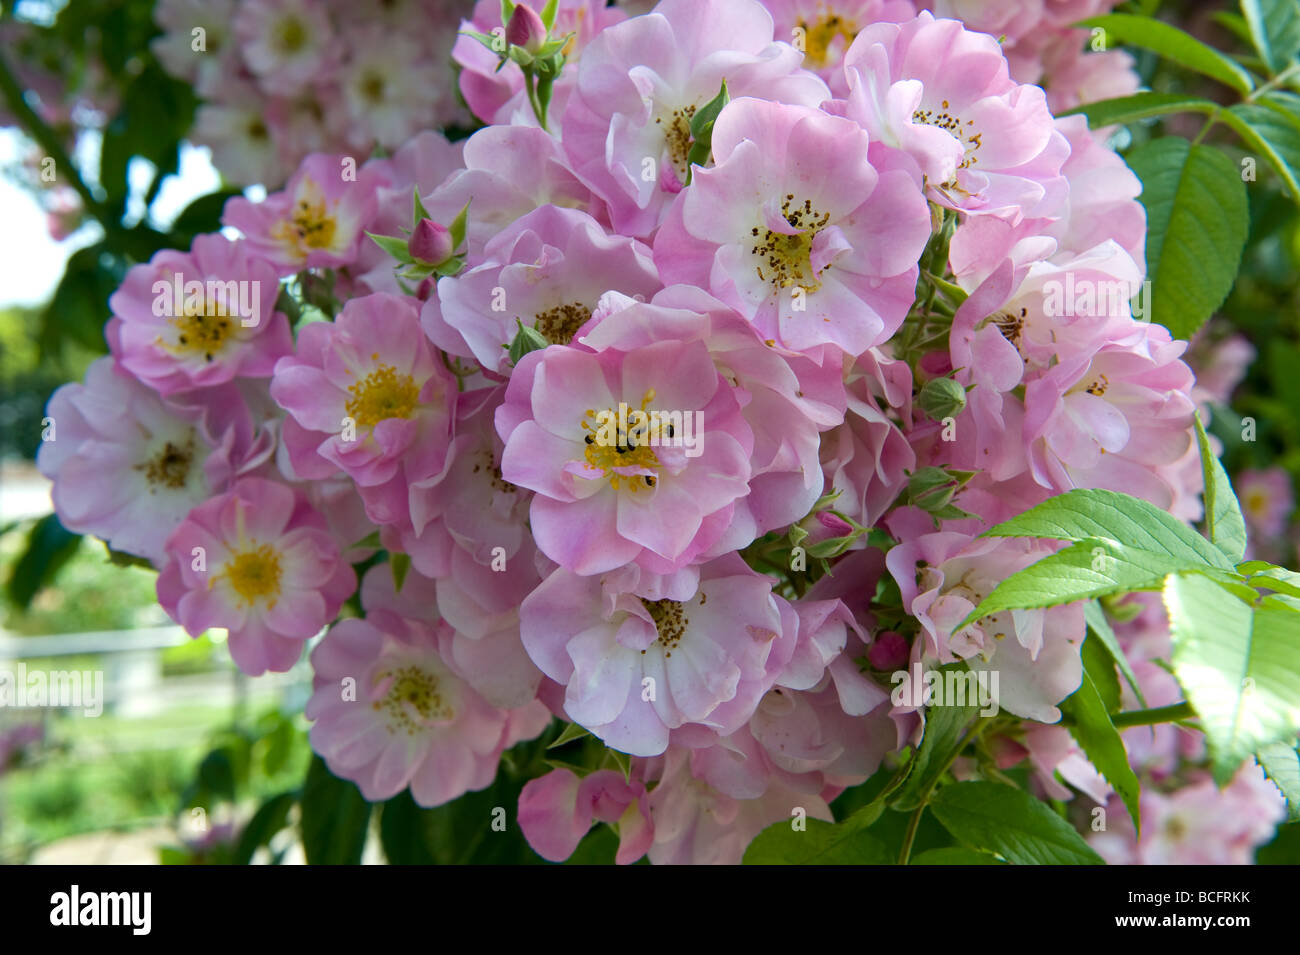 Rosa Blush rambling rose with cupped light pink semi double flowers. - Stock Image